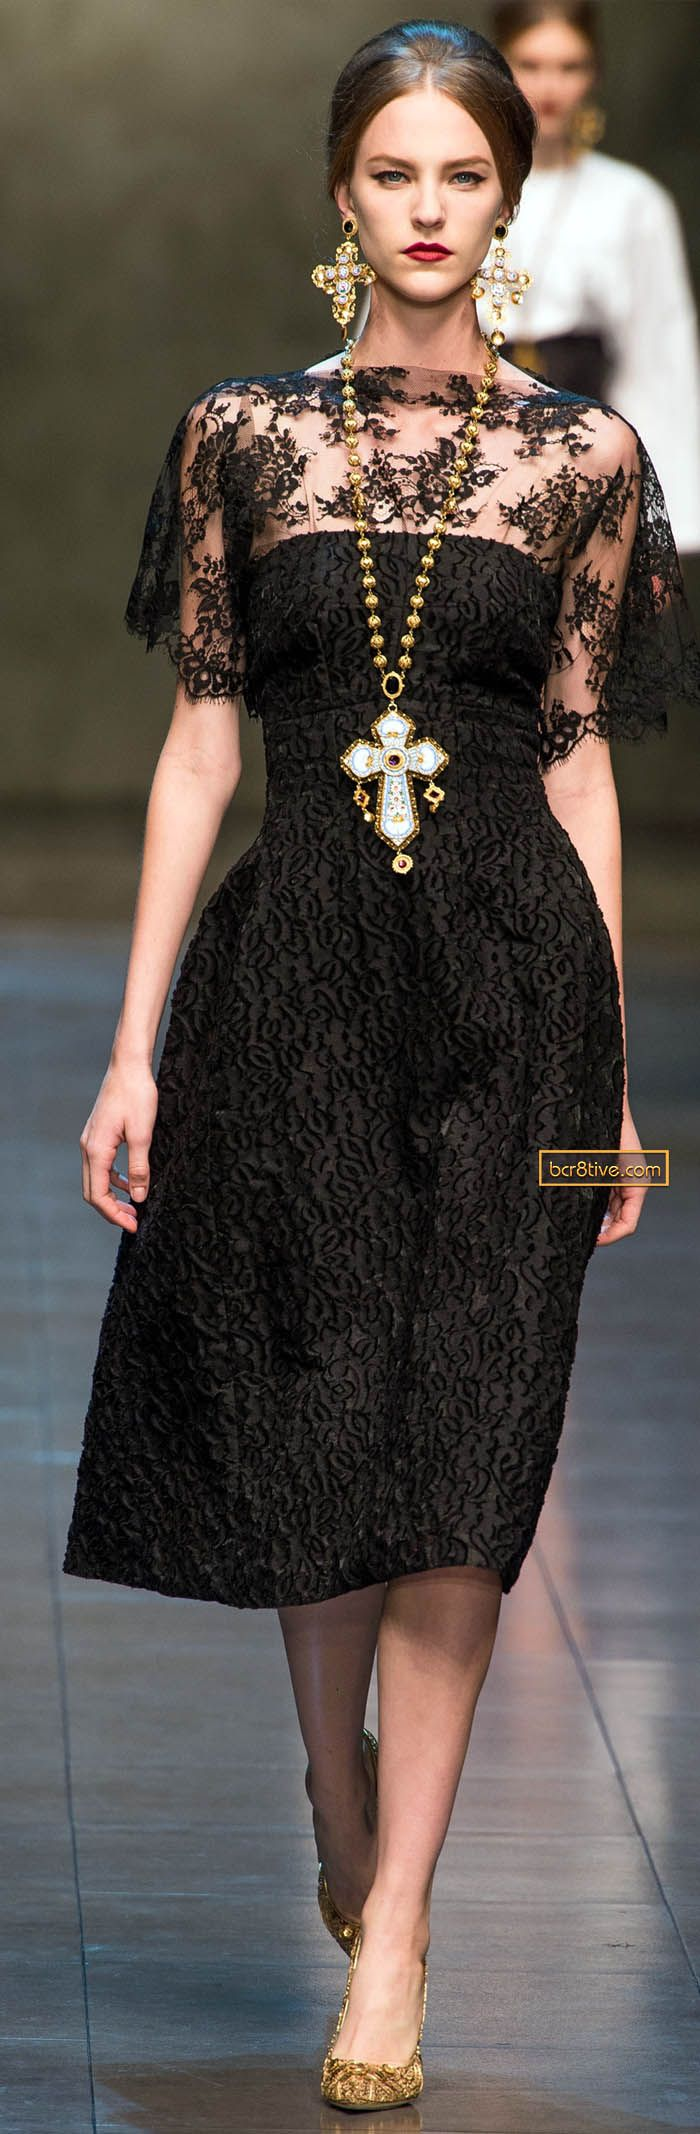 Dolce & Gabanna Fall Winter 2013-2014